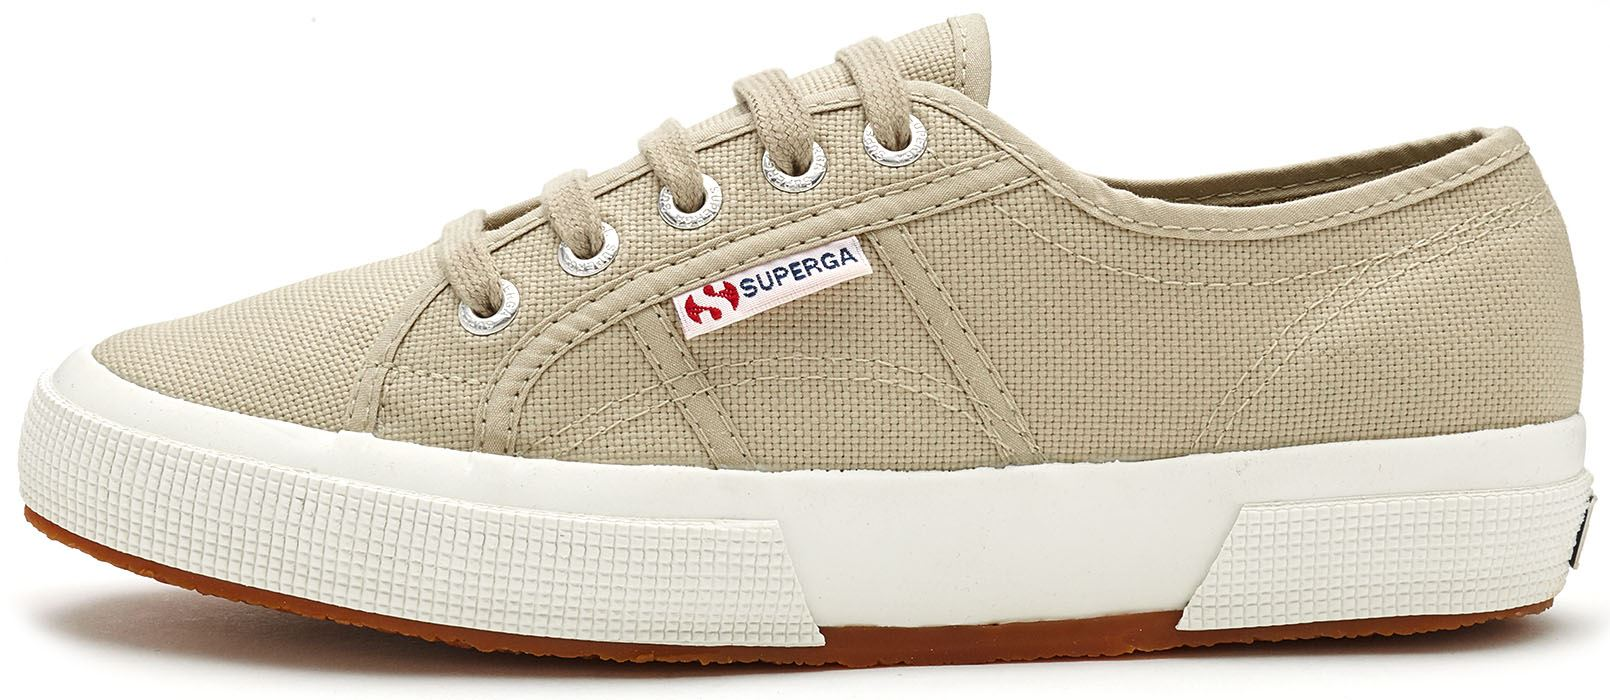 830d8a02ff85 Superga 2750 Cotu Classic Canvas Shoes in White Taupe